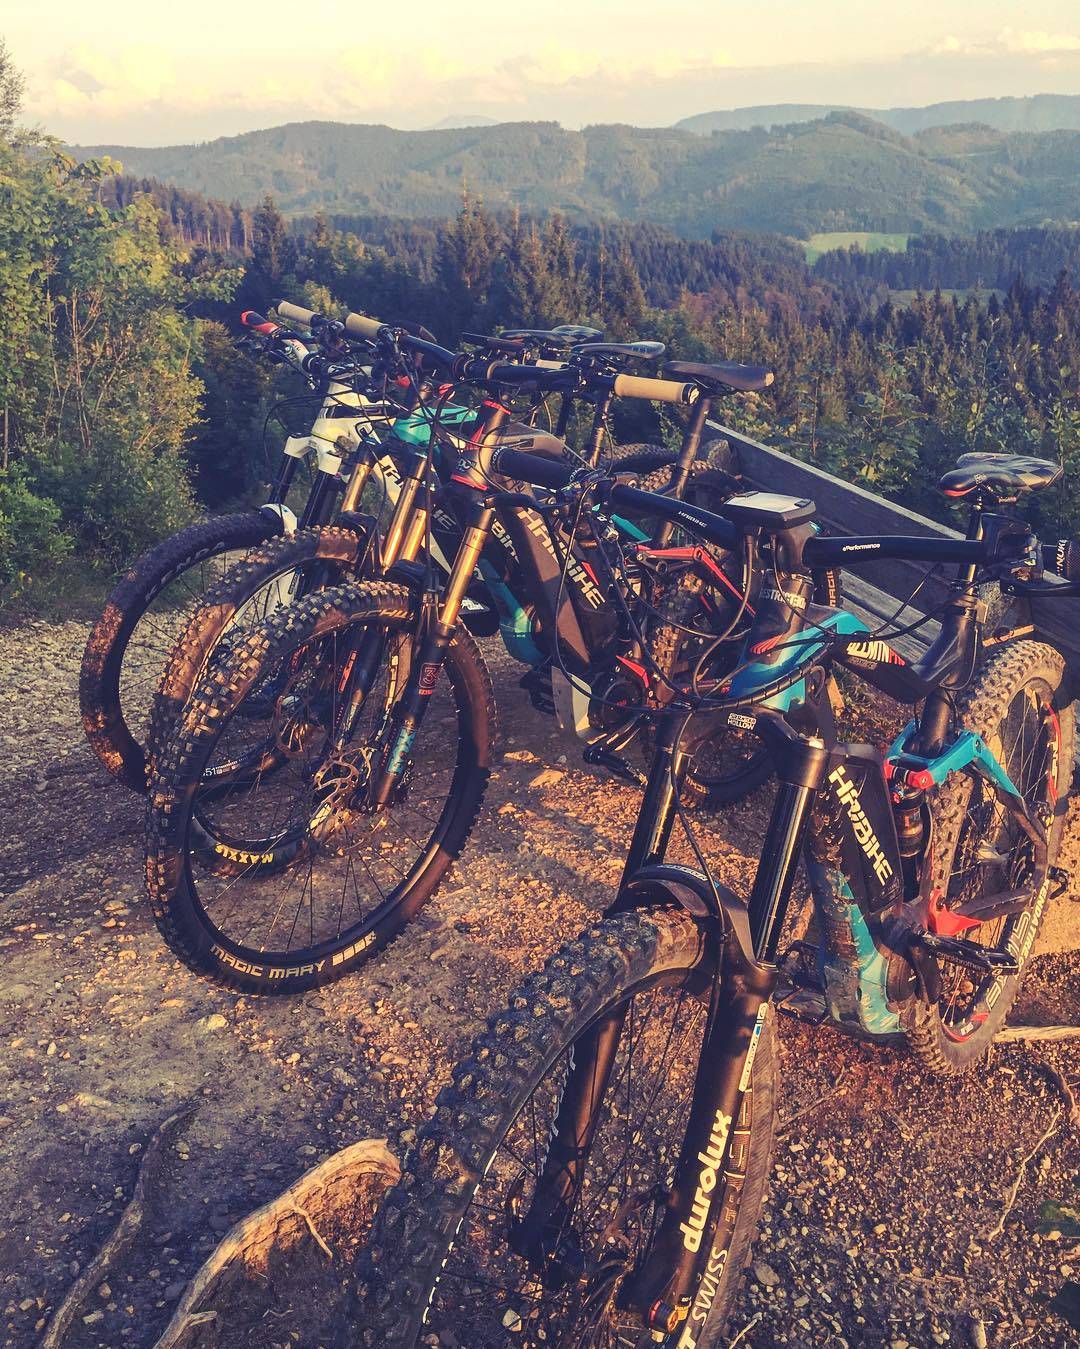 Amazing ride on the trails near #Eurobike ! #Haibike #sduro #xduro #emtb